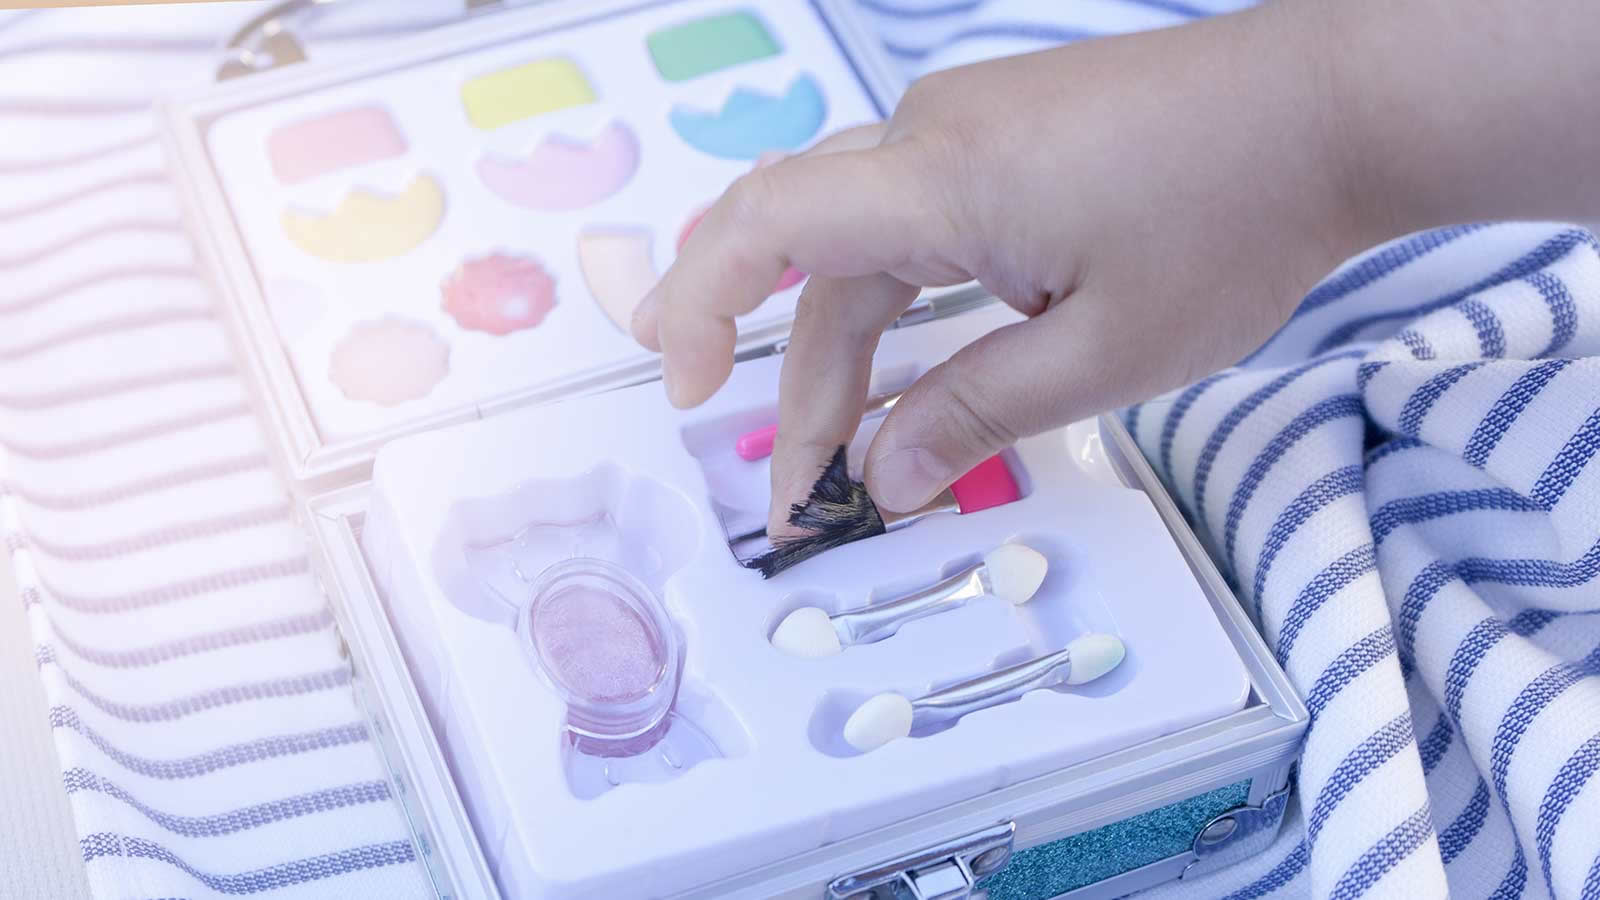 <h4>Asbestos In Kids' Makeup</h4><p>Recently, the PIRG Consumer Watchdog team found asbestos in some of the makeup sold by Claire's, which is marketed to kids and pre-teens. Inhaling or ingesting any form of asbestos can lead to serious health conditions, including lung cancer and mesothelioma.</p><em>sirtravelalot via Shutterstock</em>